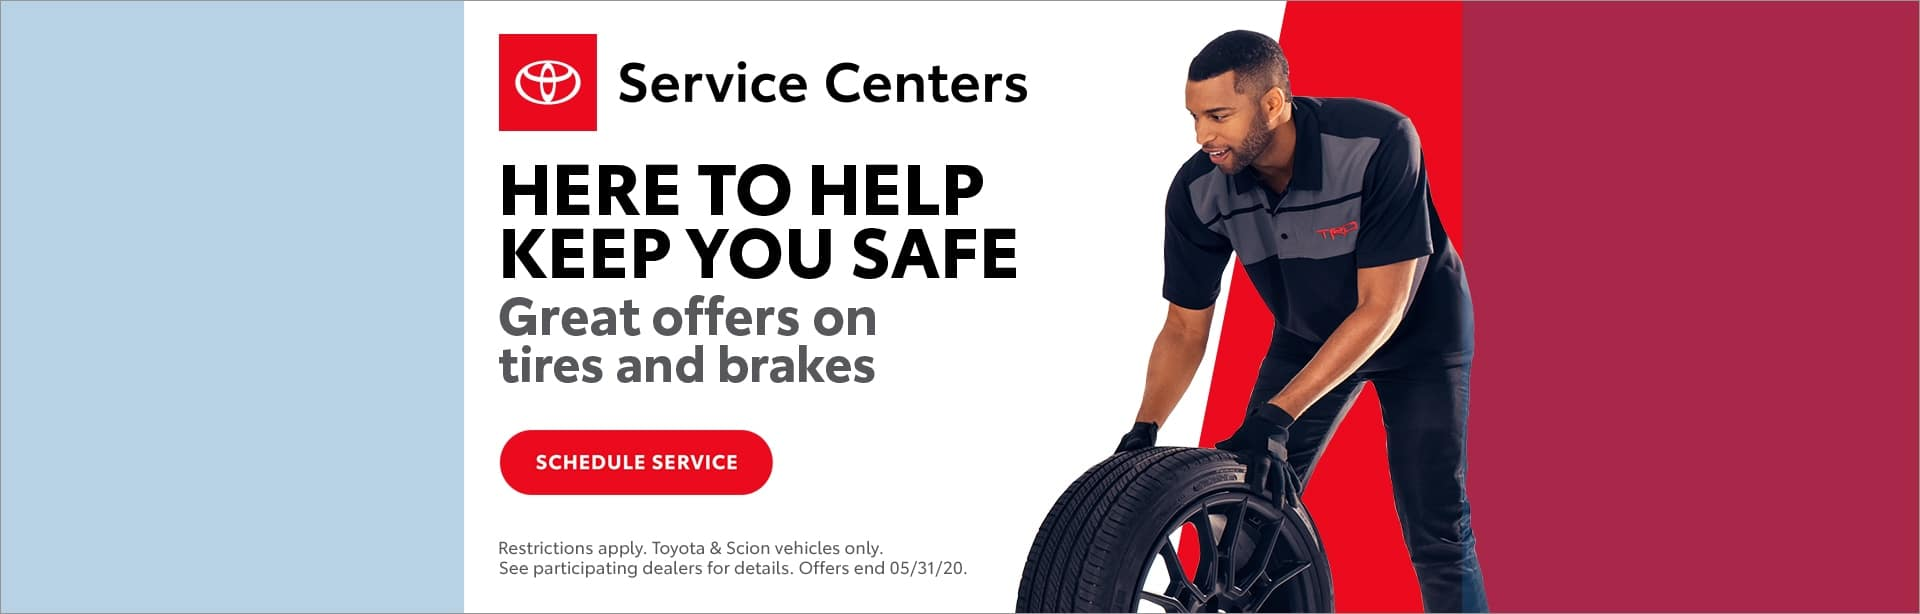 Midtown Toyota Tires and brakes offers